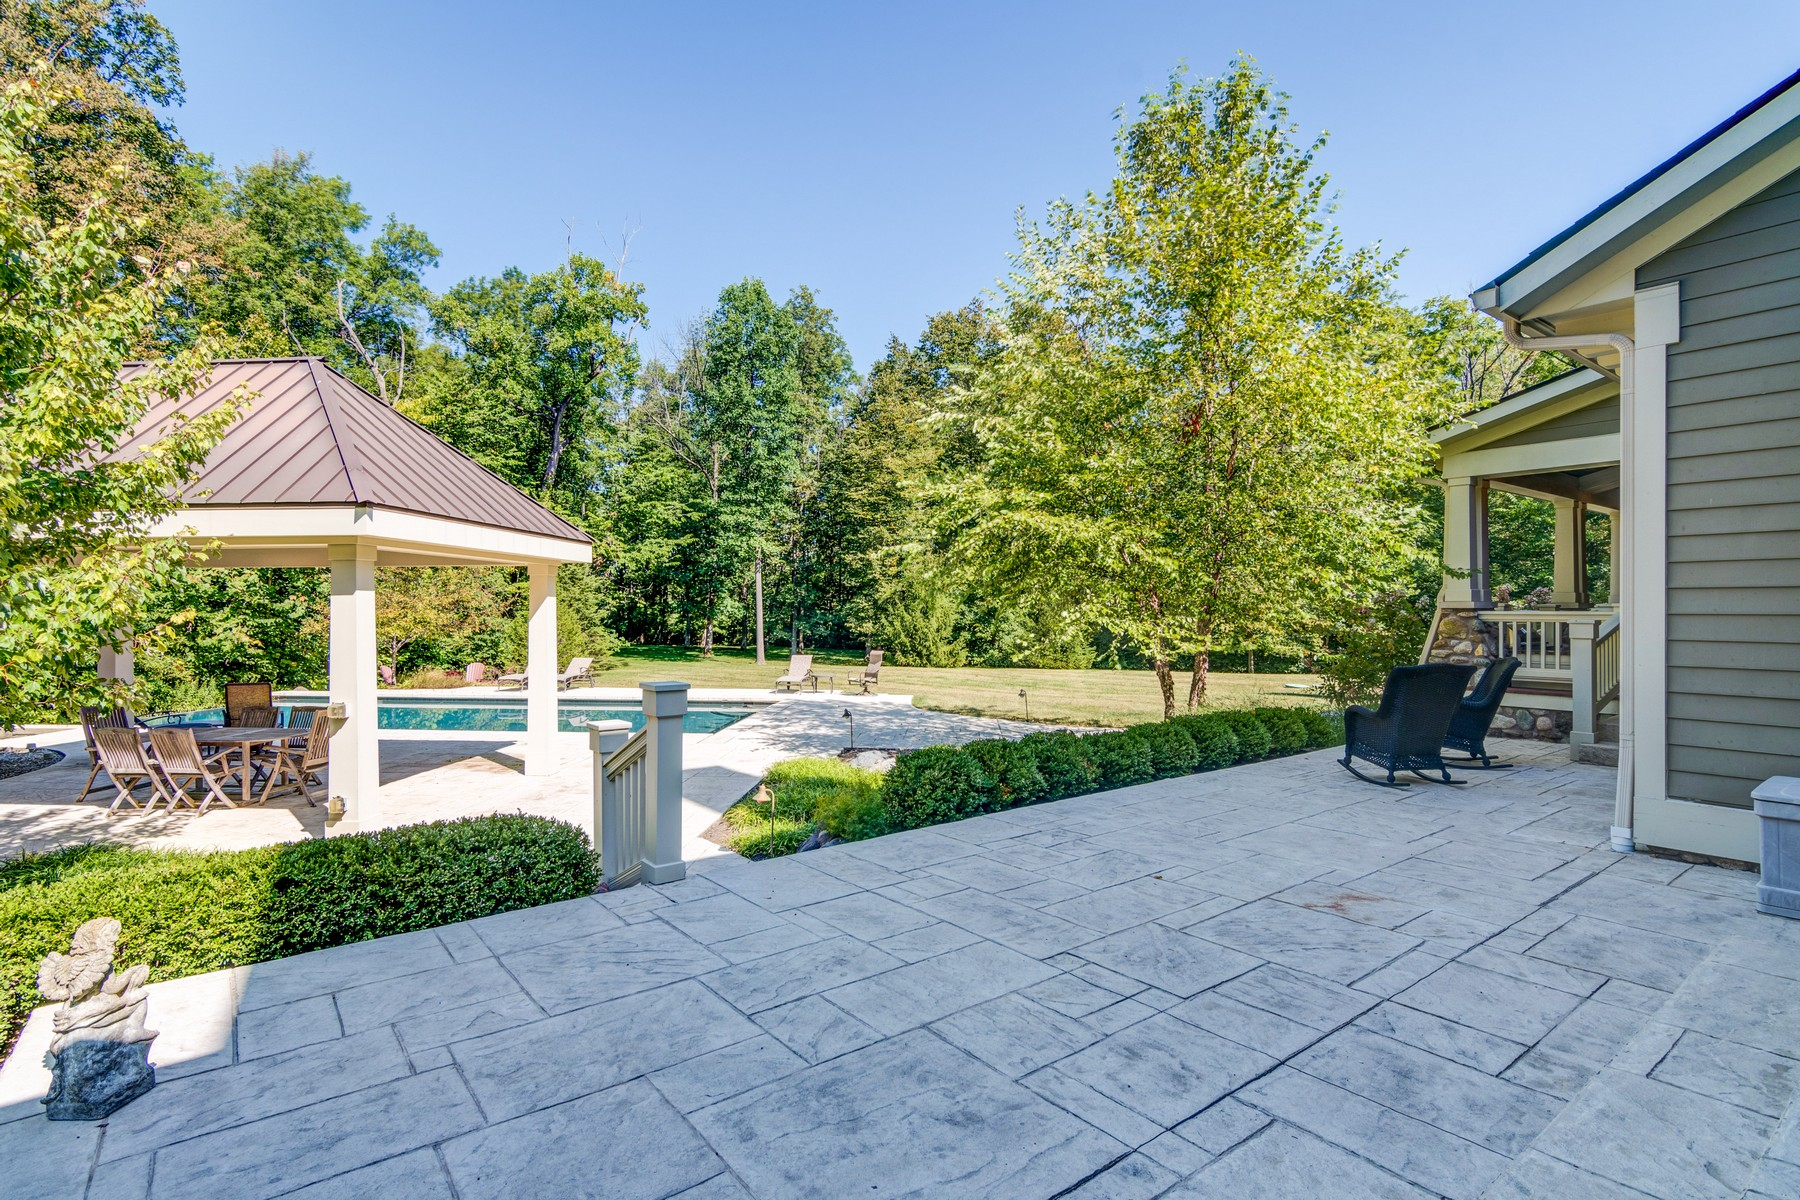 Additional photo for property listing at Stunning Estate 2020 W. 136th Street Carmel, Indiana 46032 United States